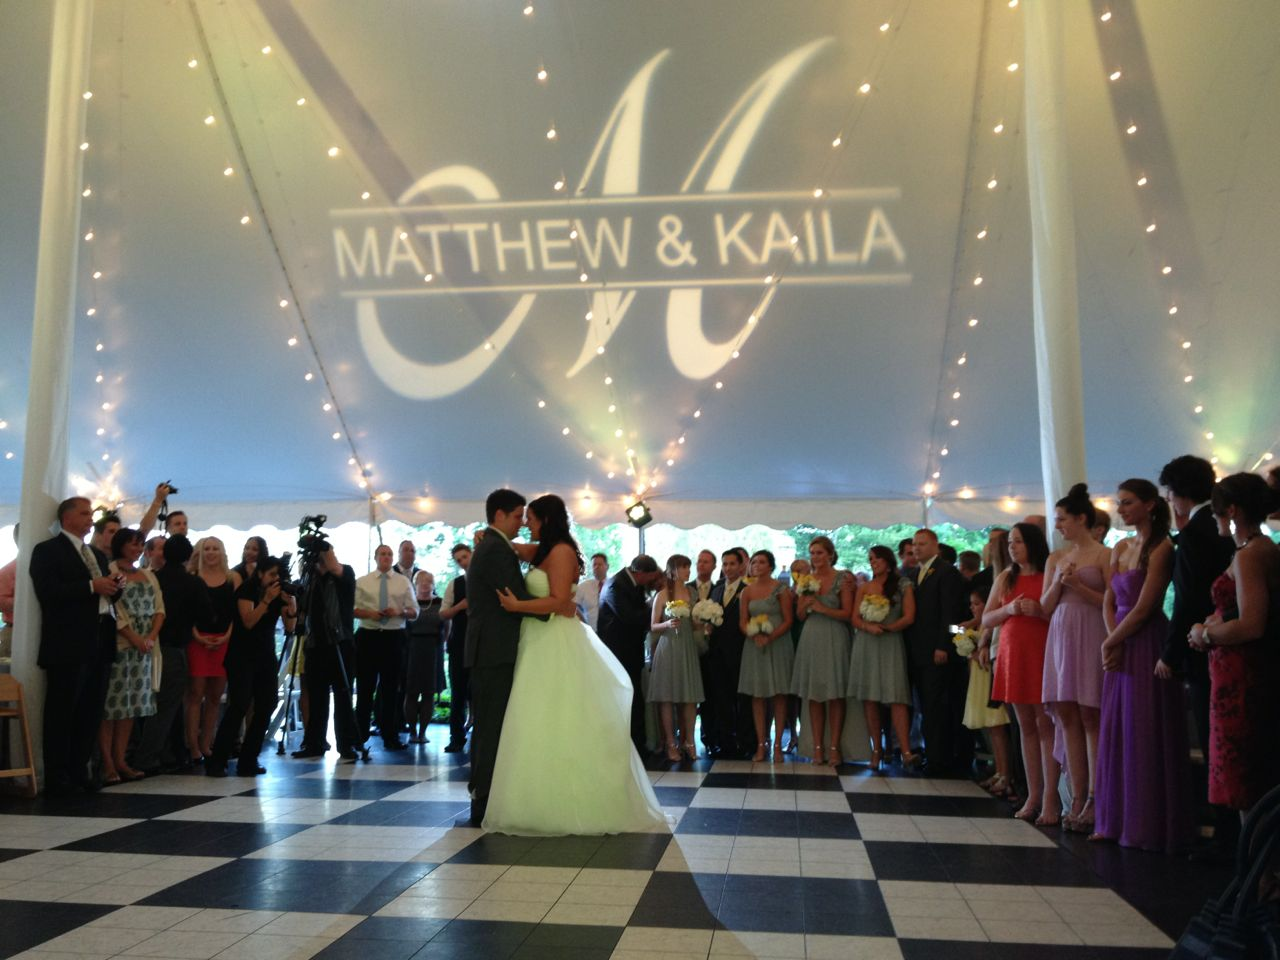 weddings201213.jpg